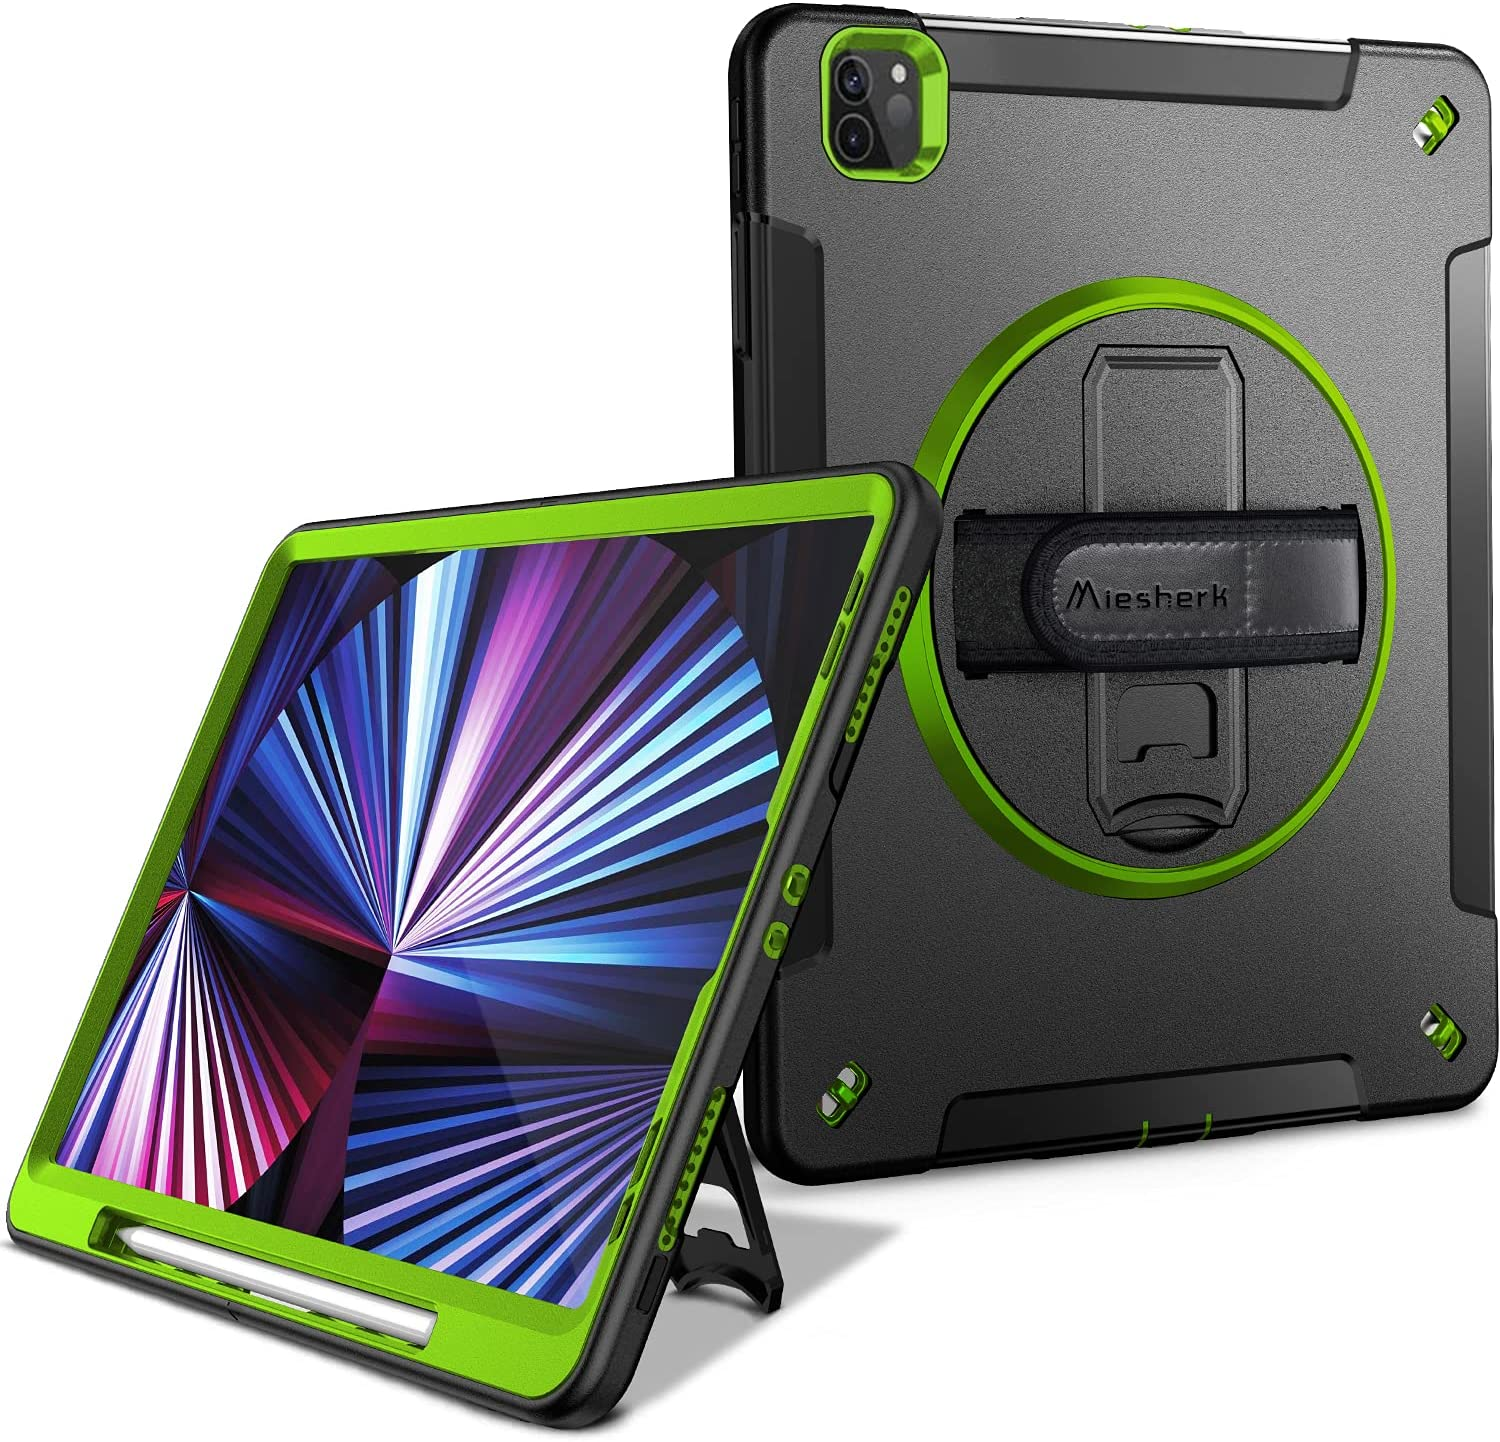 Miesherk iPad Pro 11 Case 2021 3rd Generation: Military Grade Heavy Duty Shockproof Protective Cover for iPad 11 Inch 2021 - Pencil Holder - Rotating Stand - Hand/Shoulder Strap - Green